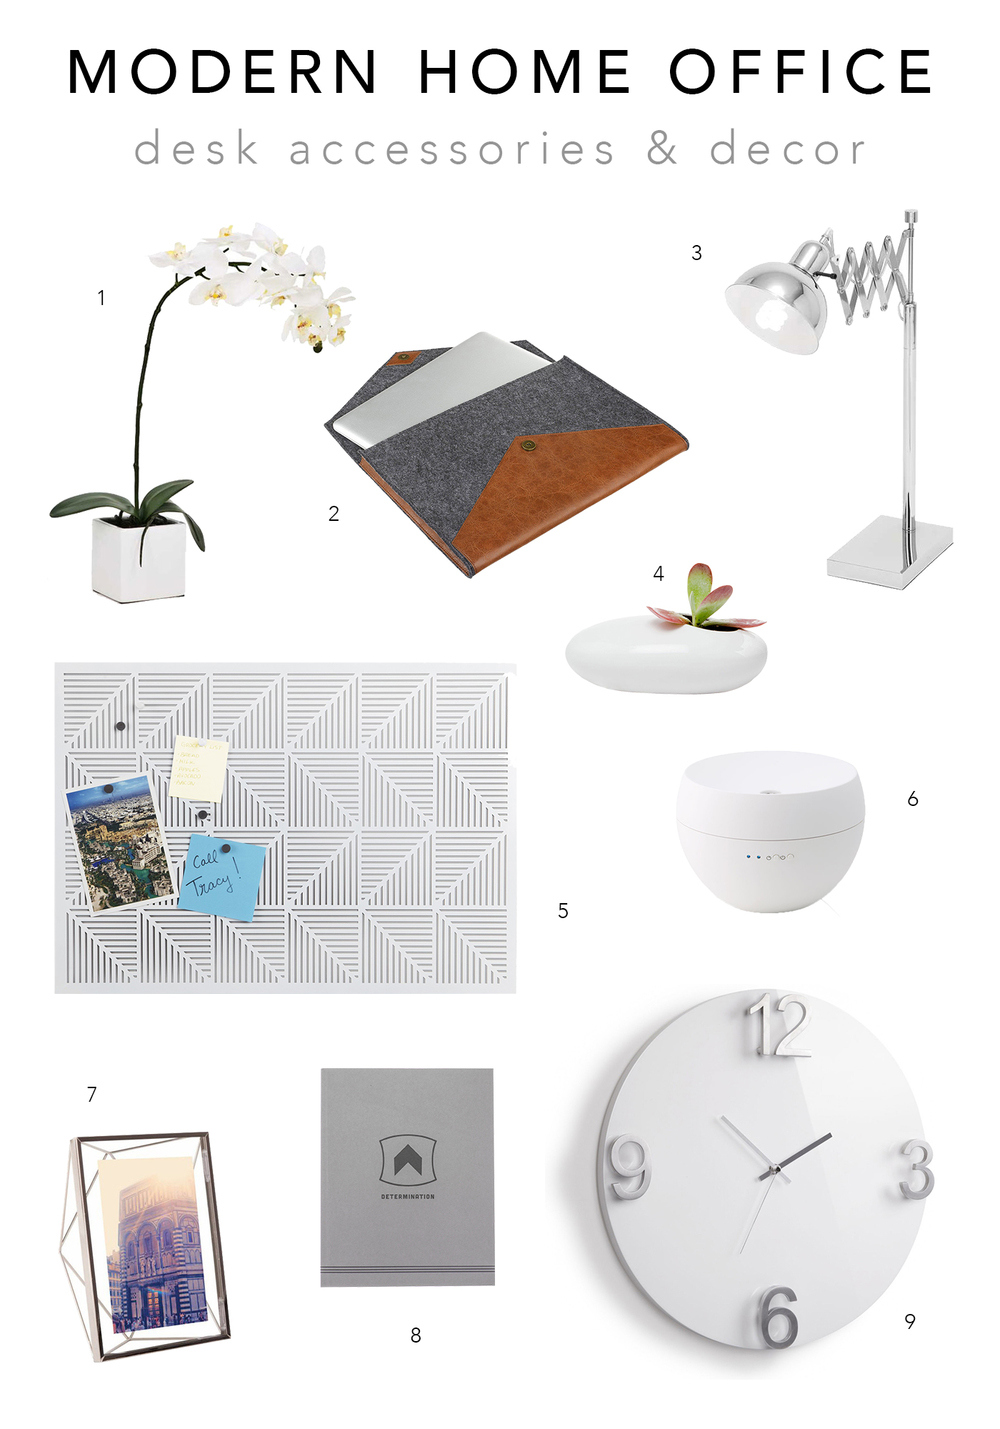 Dot & Bo Modern Home Office - Desk Accessories & Decor